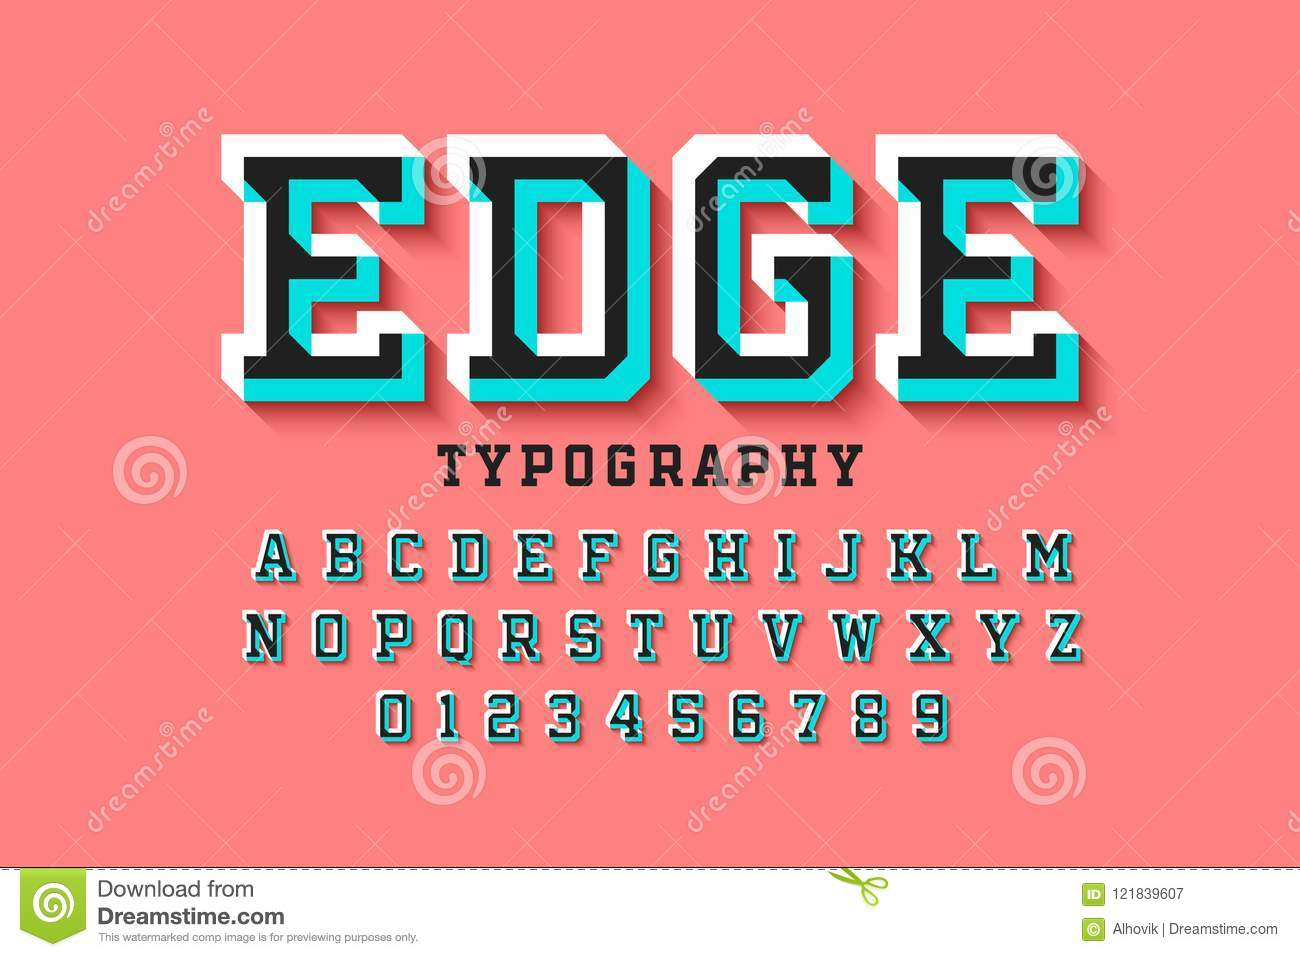 Stylised colorful 3d font stock vector. Illustration of graphic ...